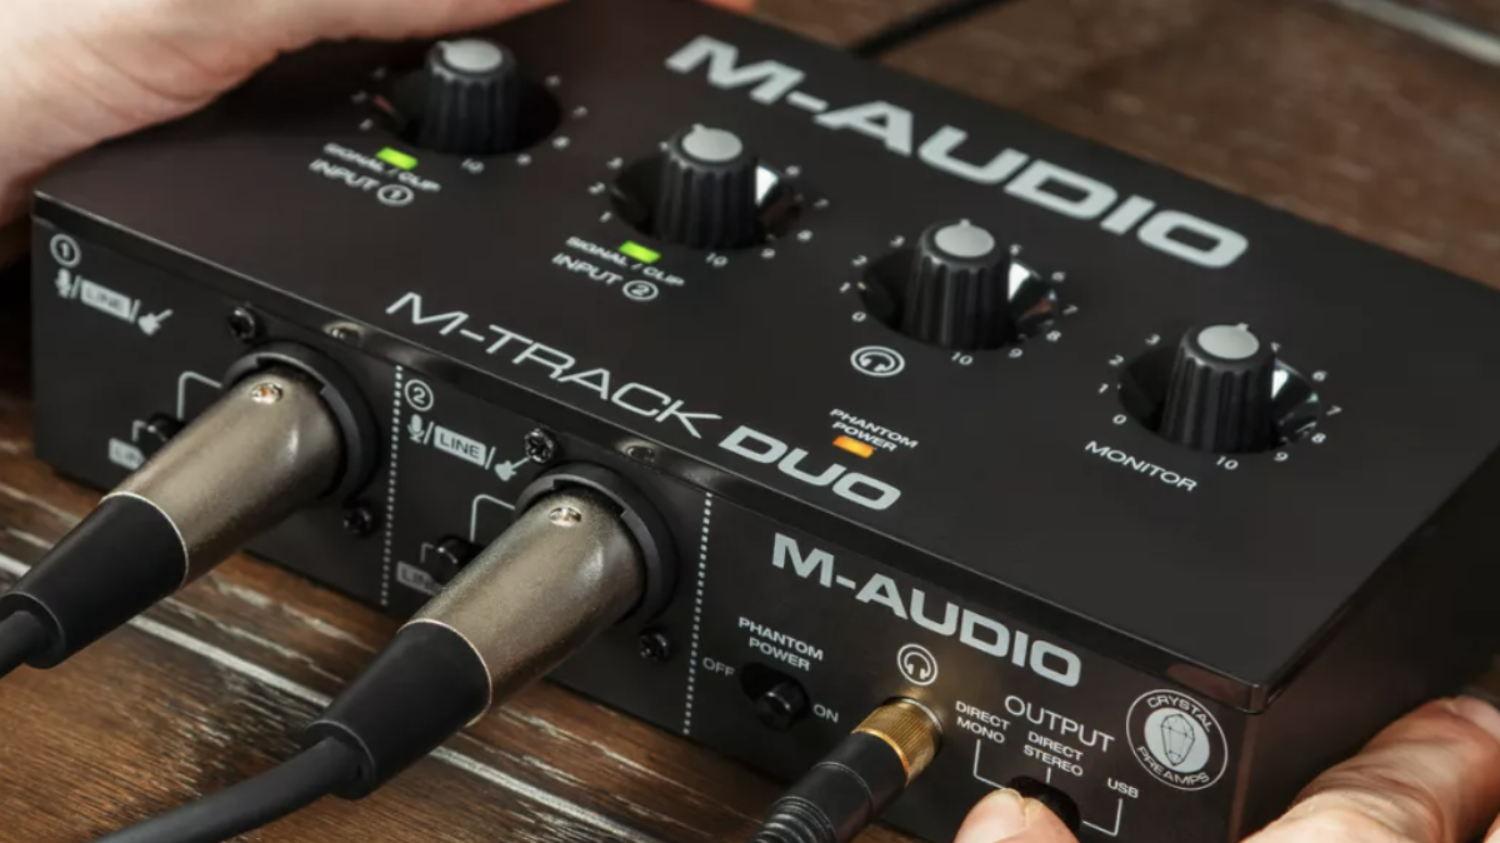 M-Audio M-Track Audio Interfaces